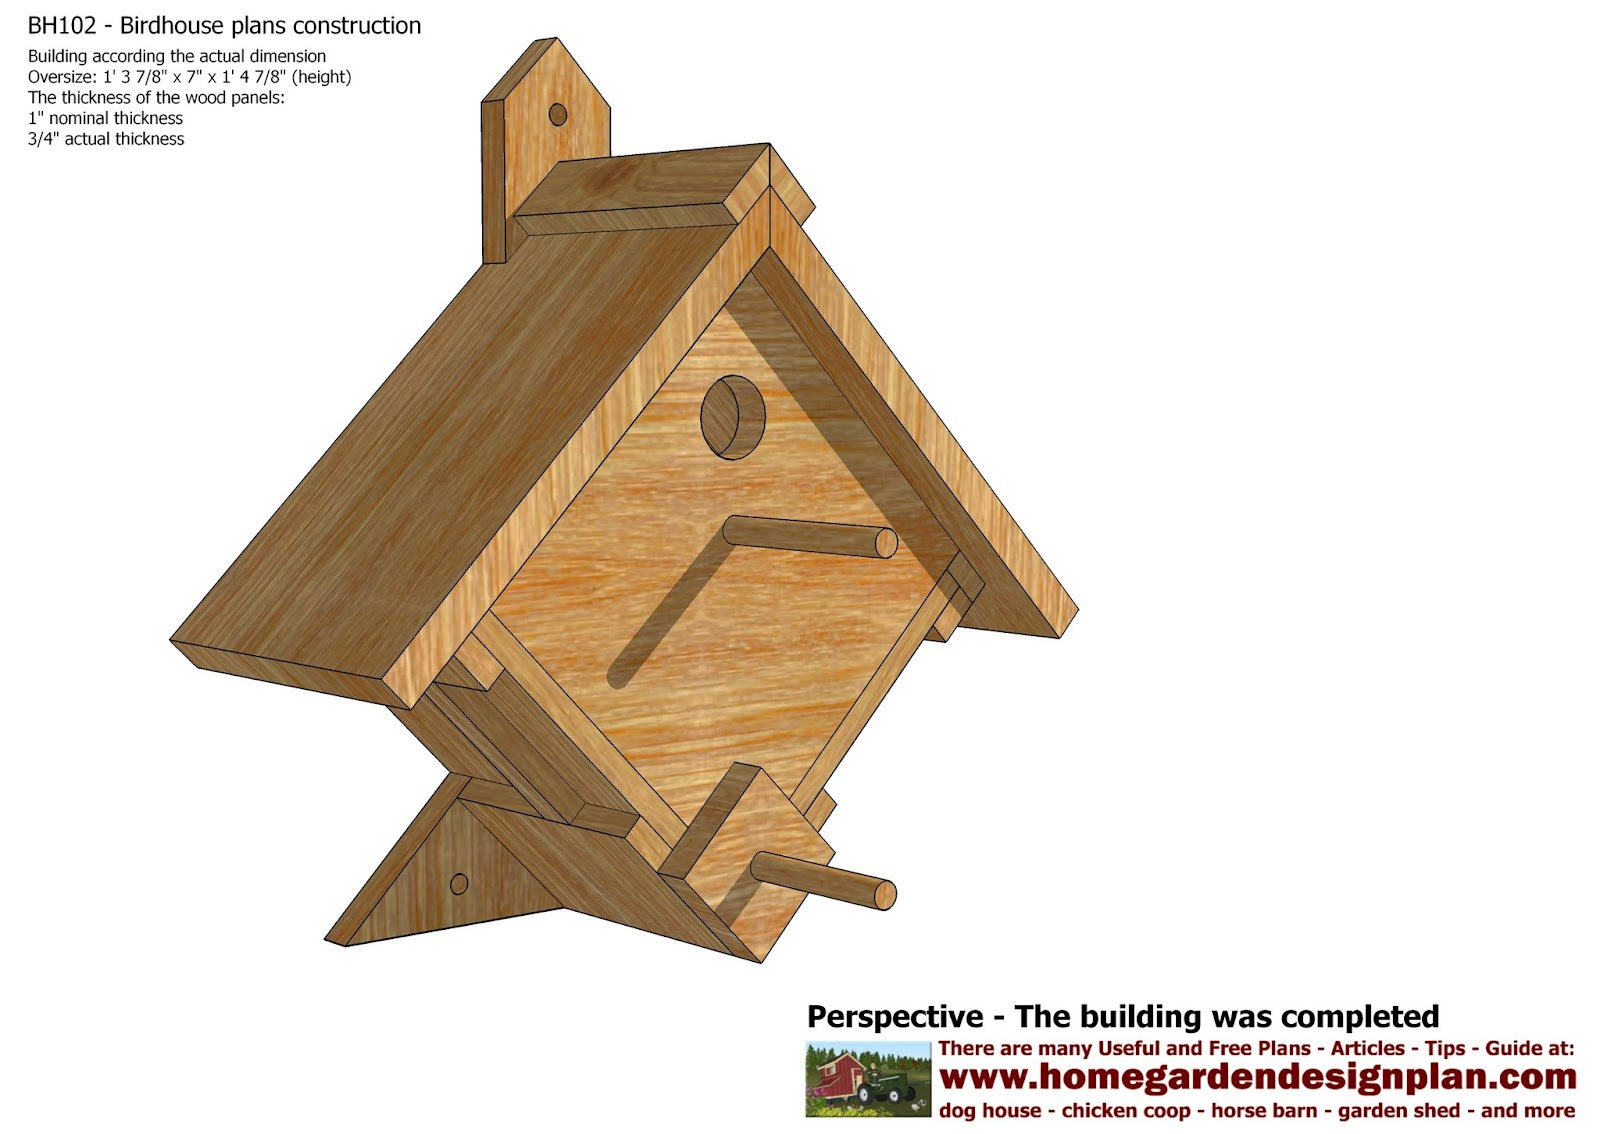 home garden plans: bh102 - bird house plans construction - bird